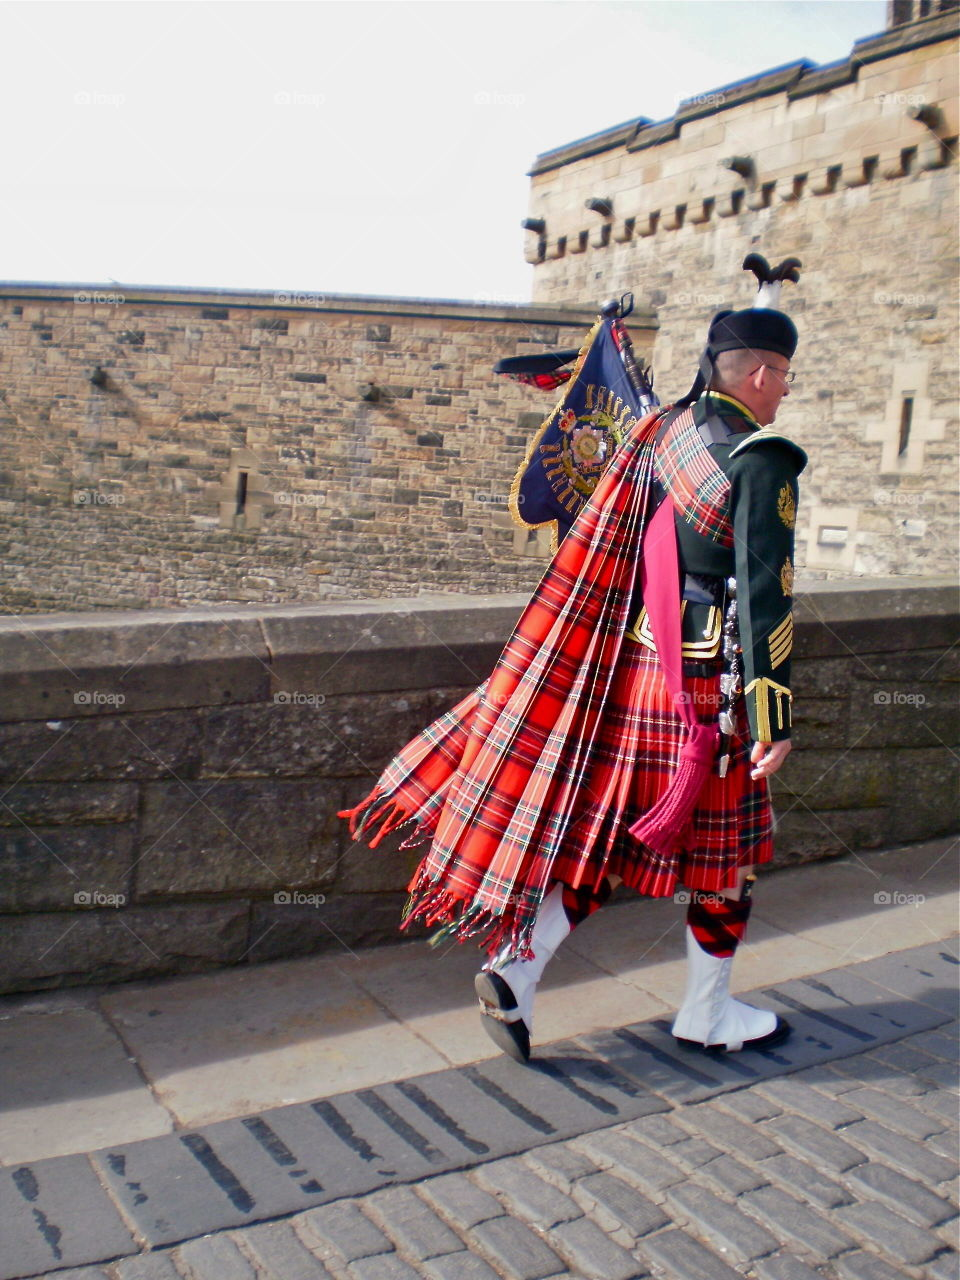 Changing of the Guard. Edinburgh Castle in Scotland during the changing of the guard.